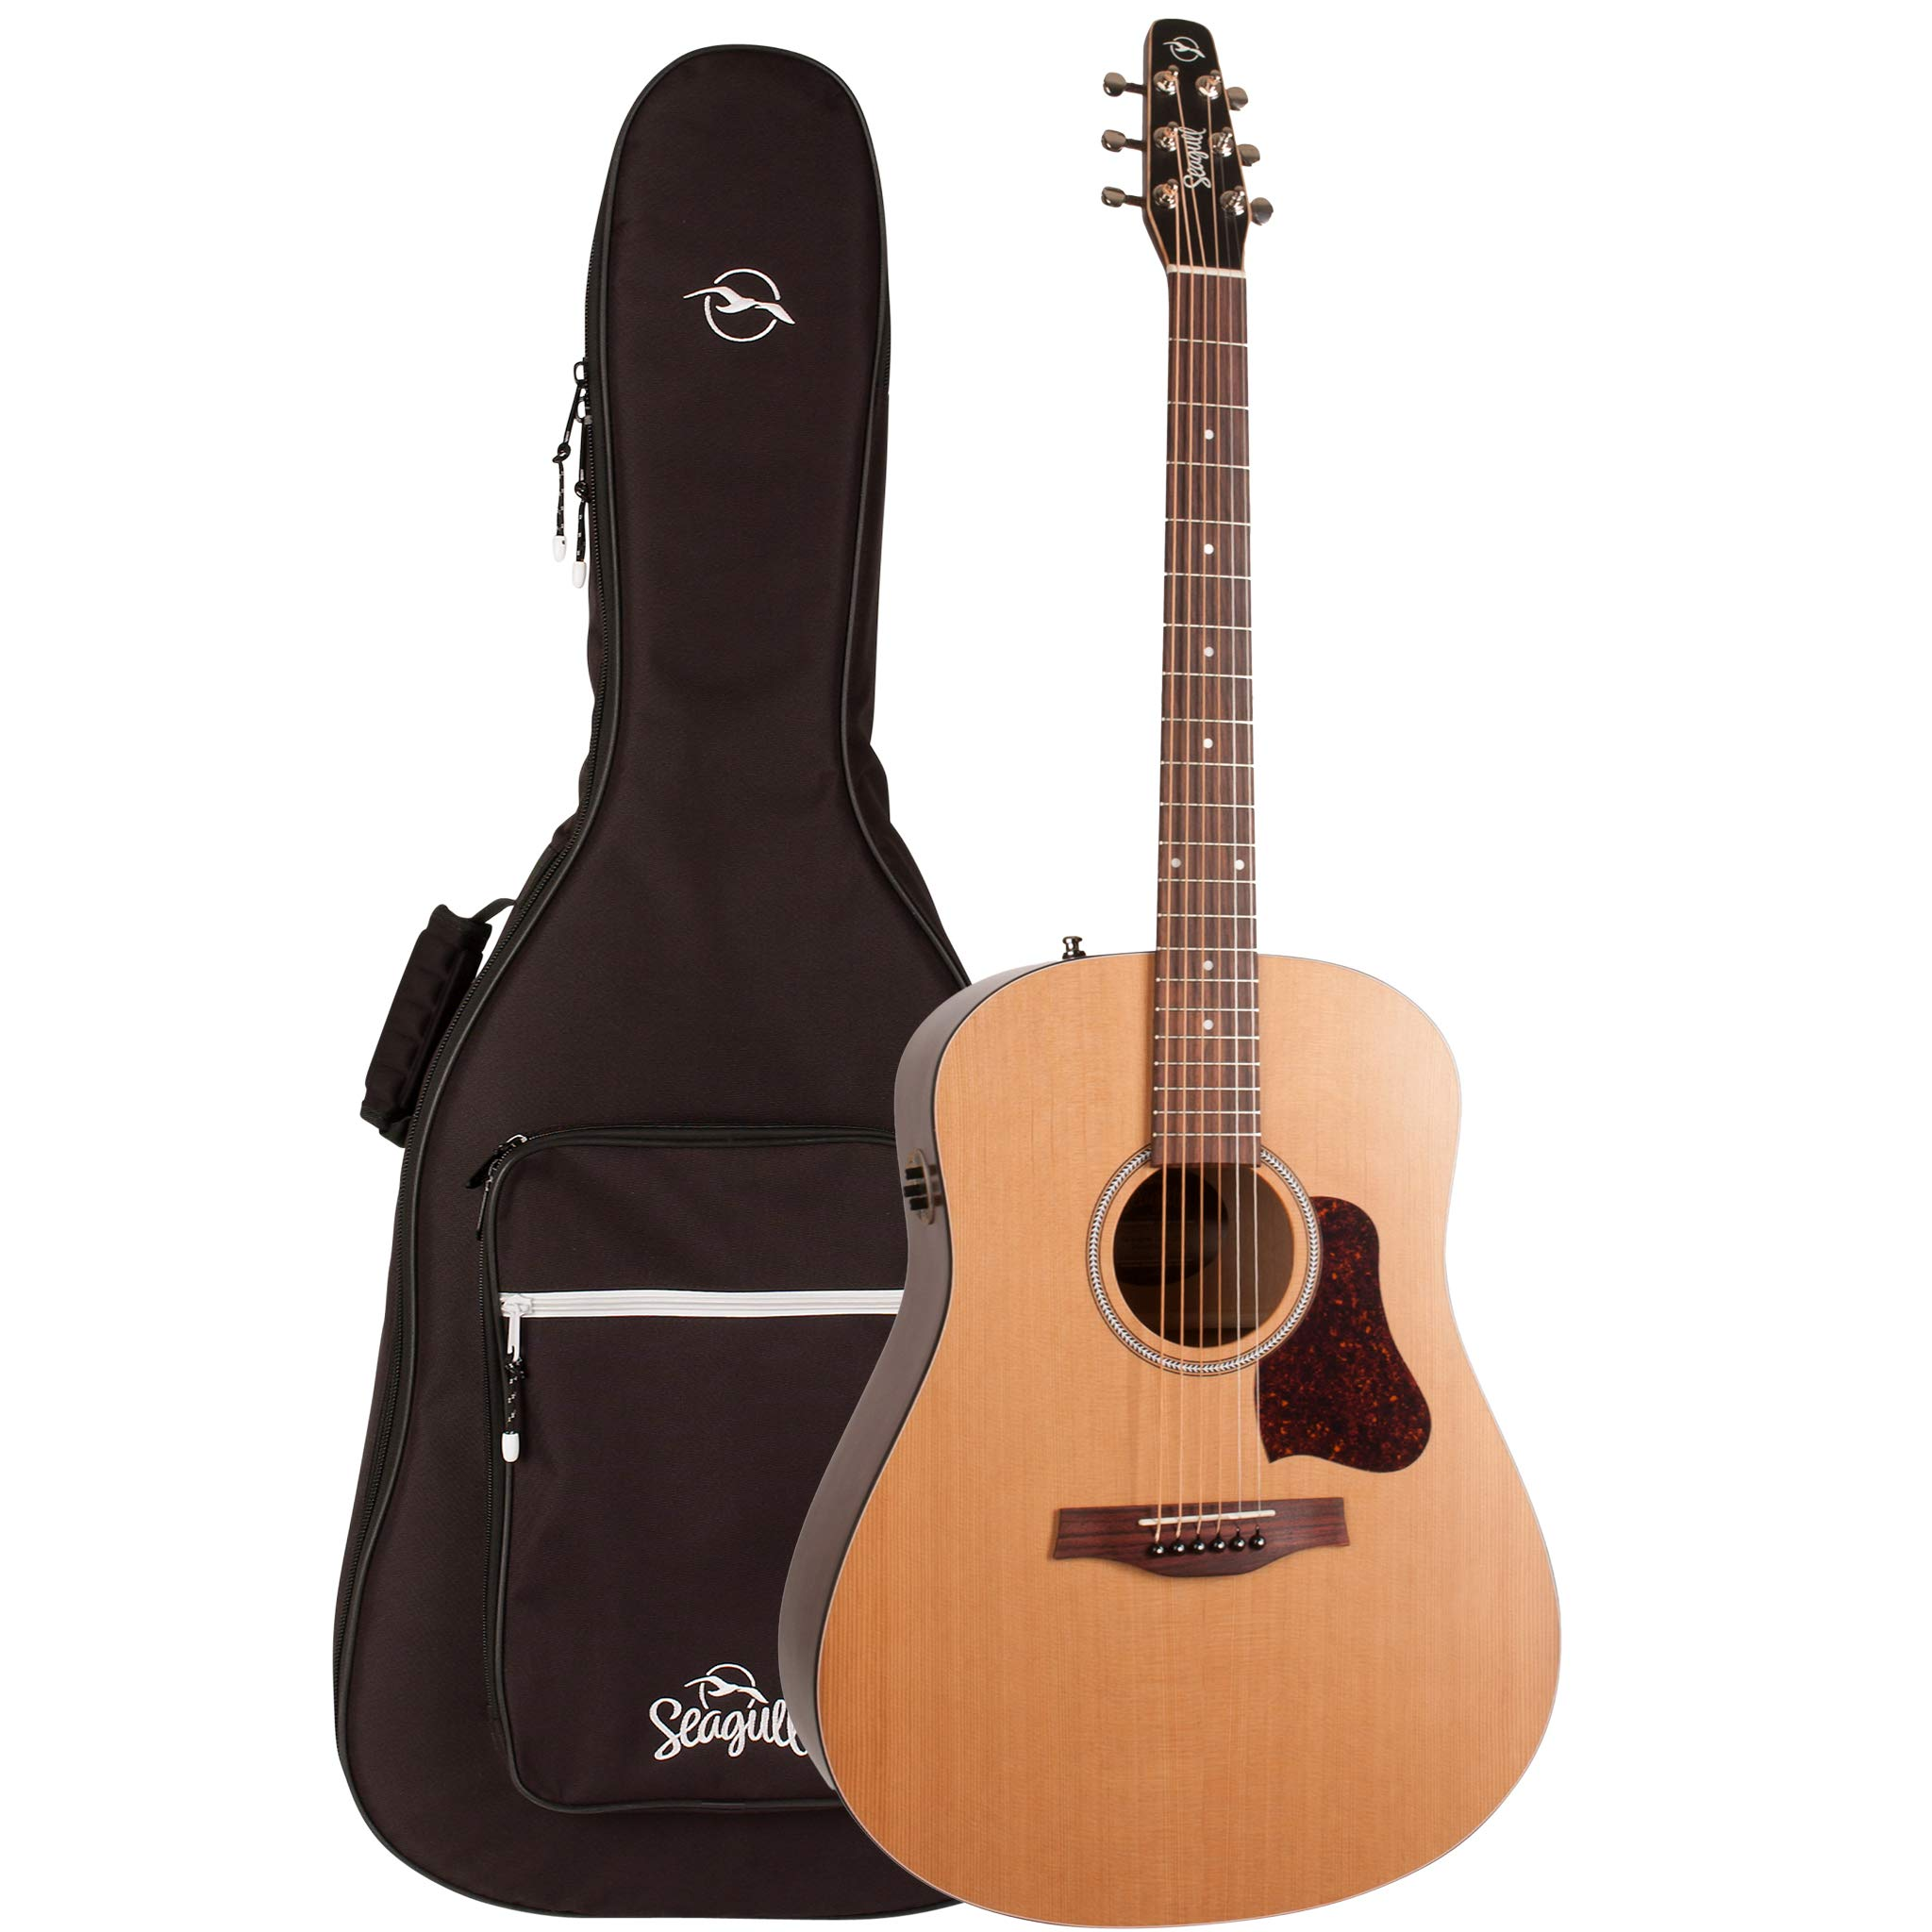 Seagull S6 Original Slim QIT Acoustic Electric Guitar with Gig Bag (46416) by Seagull